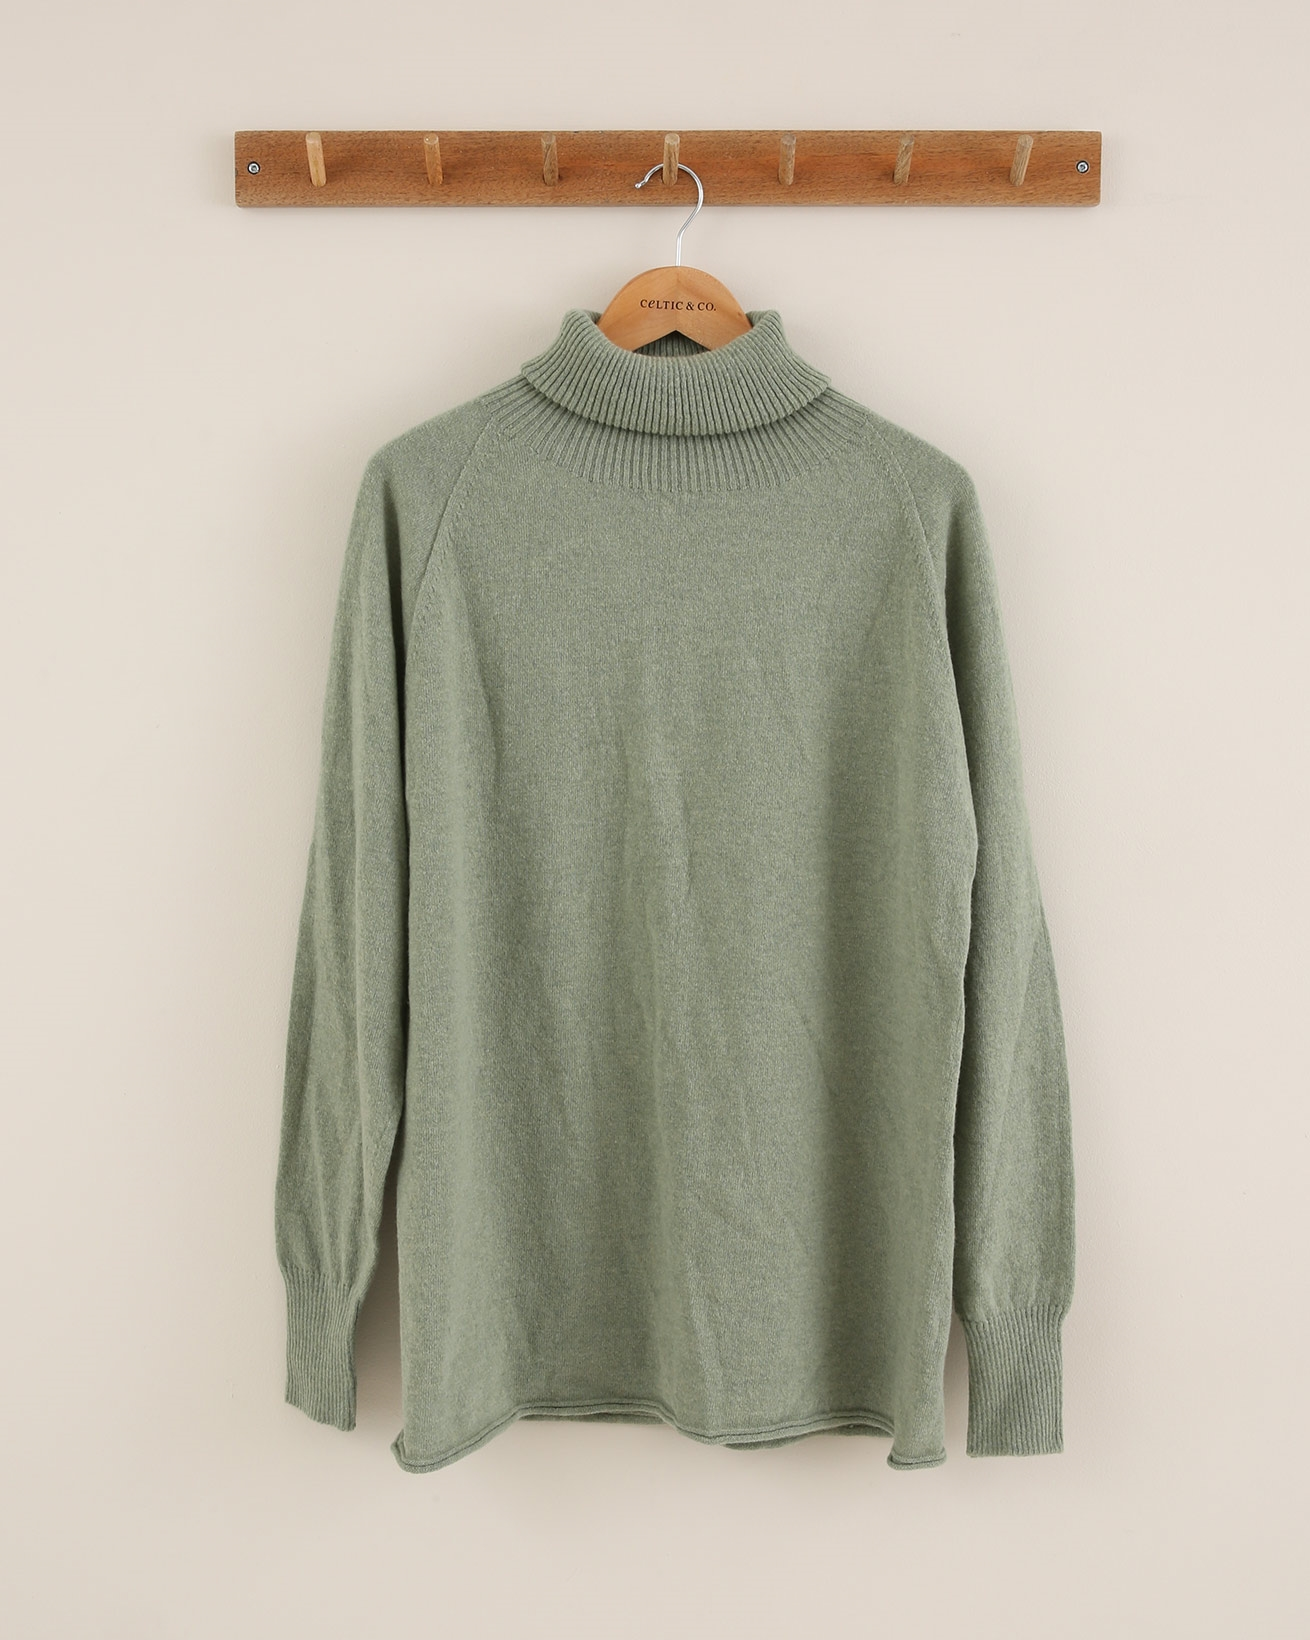 Ribbed Geelong Roll Neck - Size Small - Sage - 1833